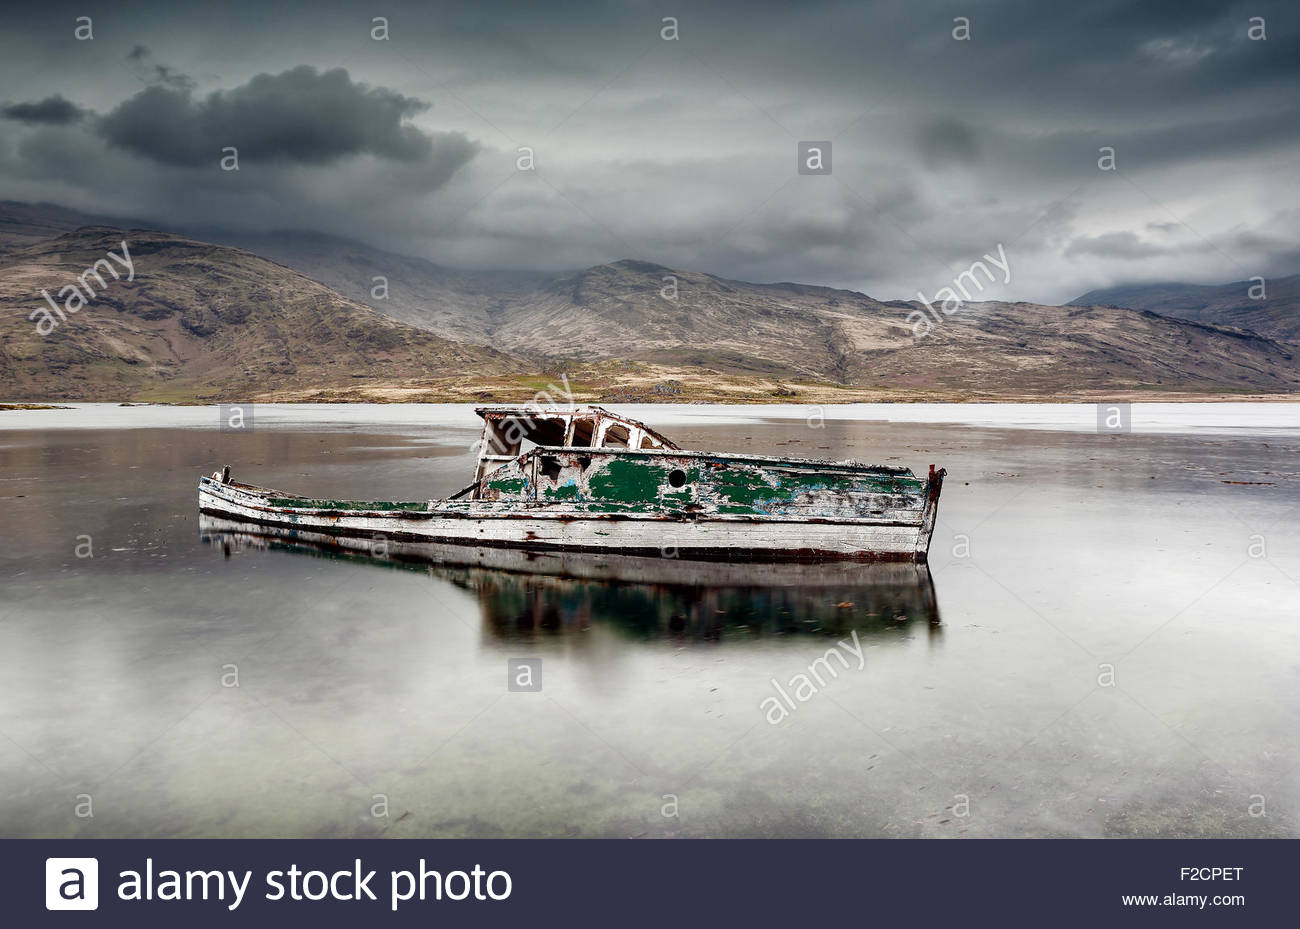 An abandoned boat wreck on Loch Scridain, Isle of Mull. - Stock Image